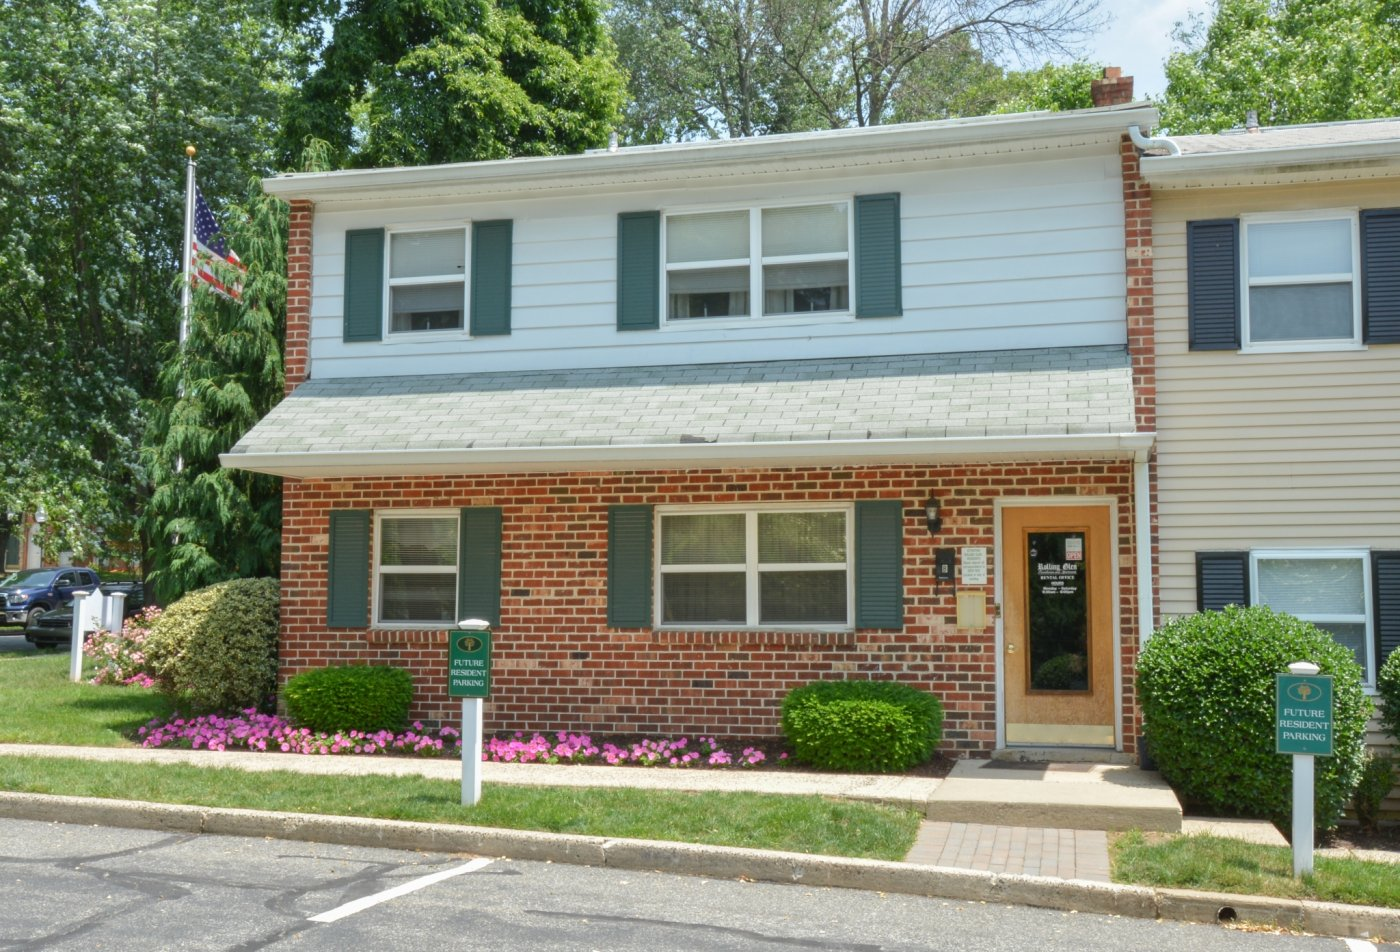 Apartment Homes in Boothwyn, PA | Rolling Glen Townhomes and Apartments